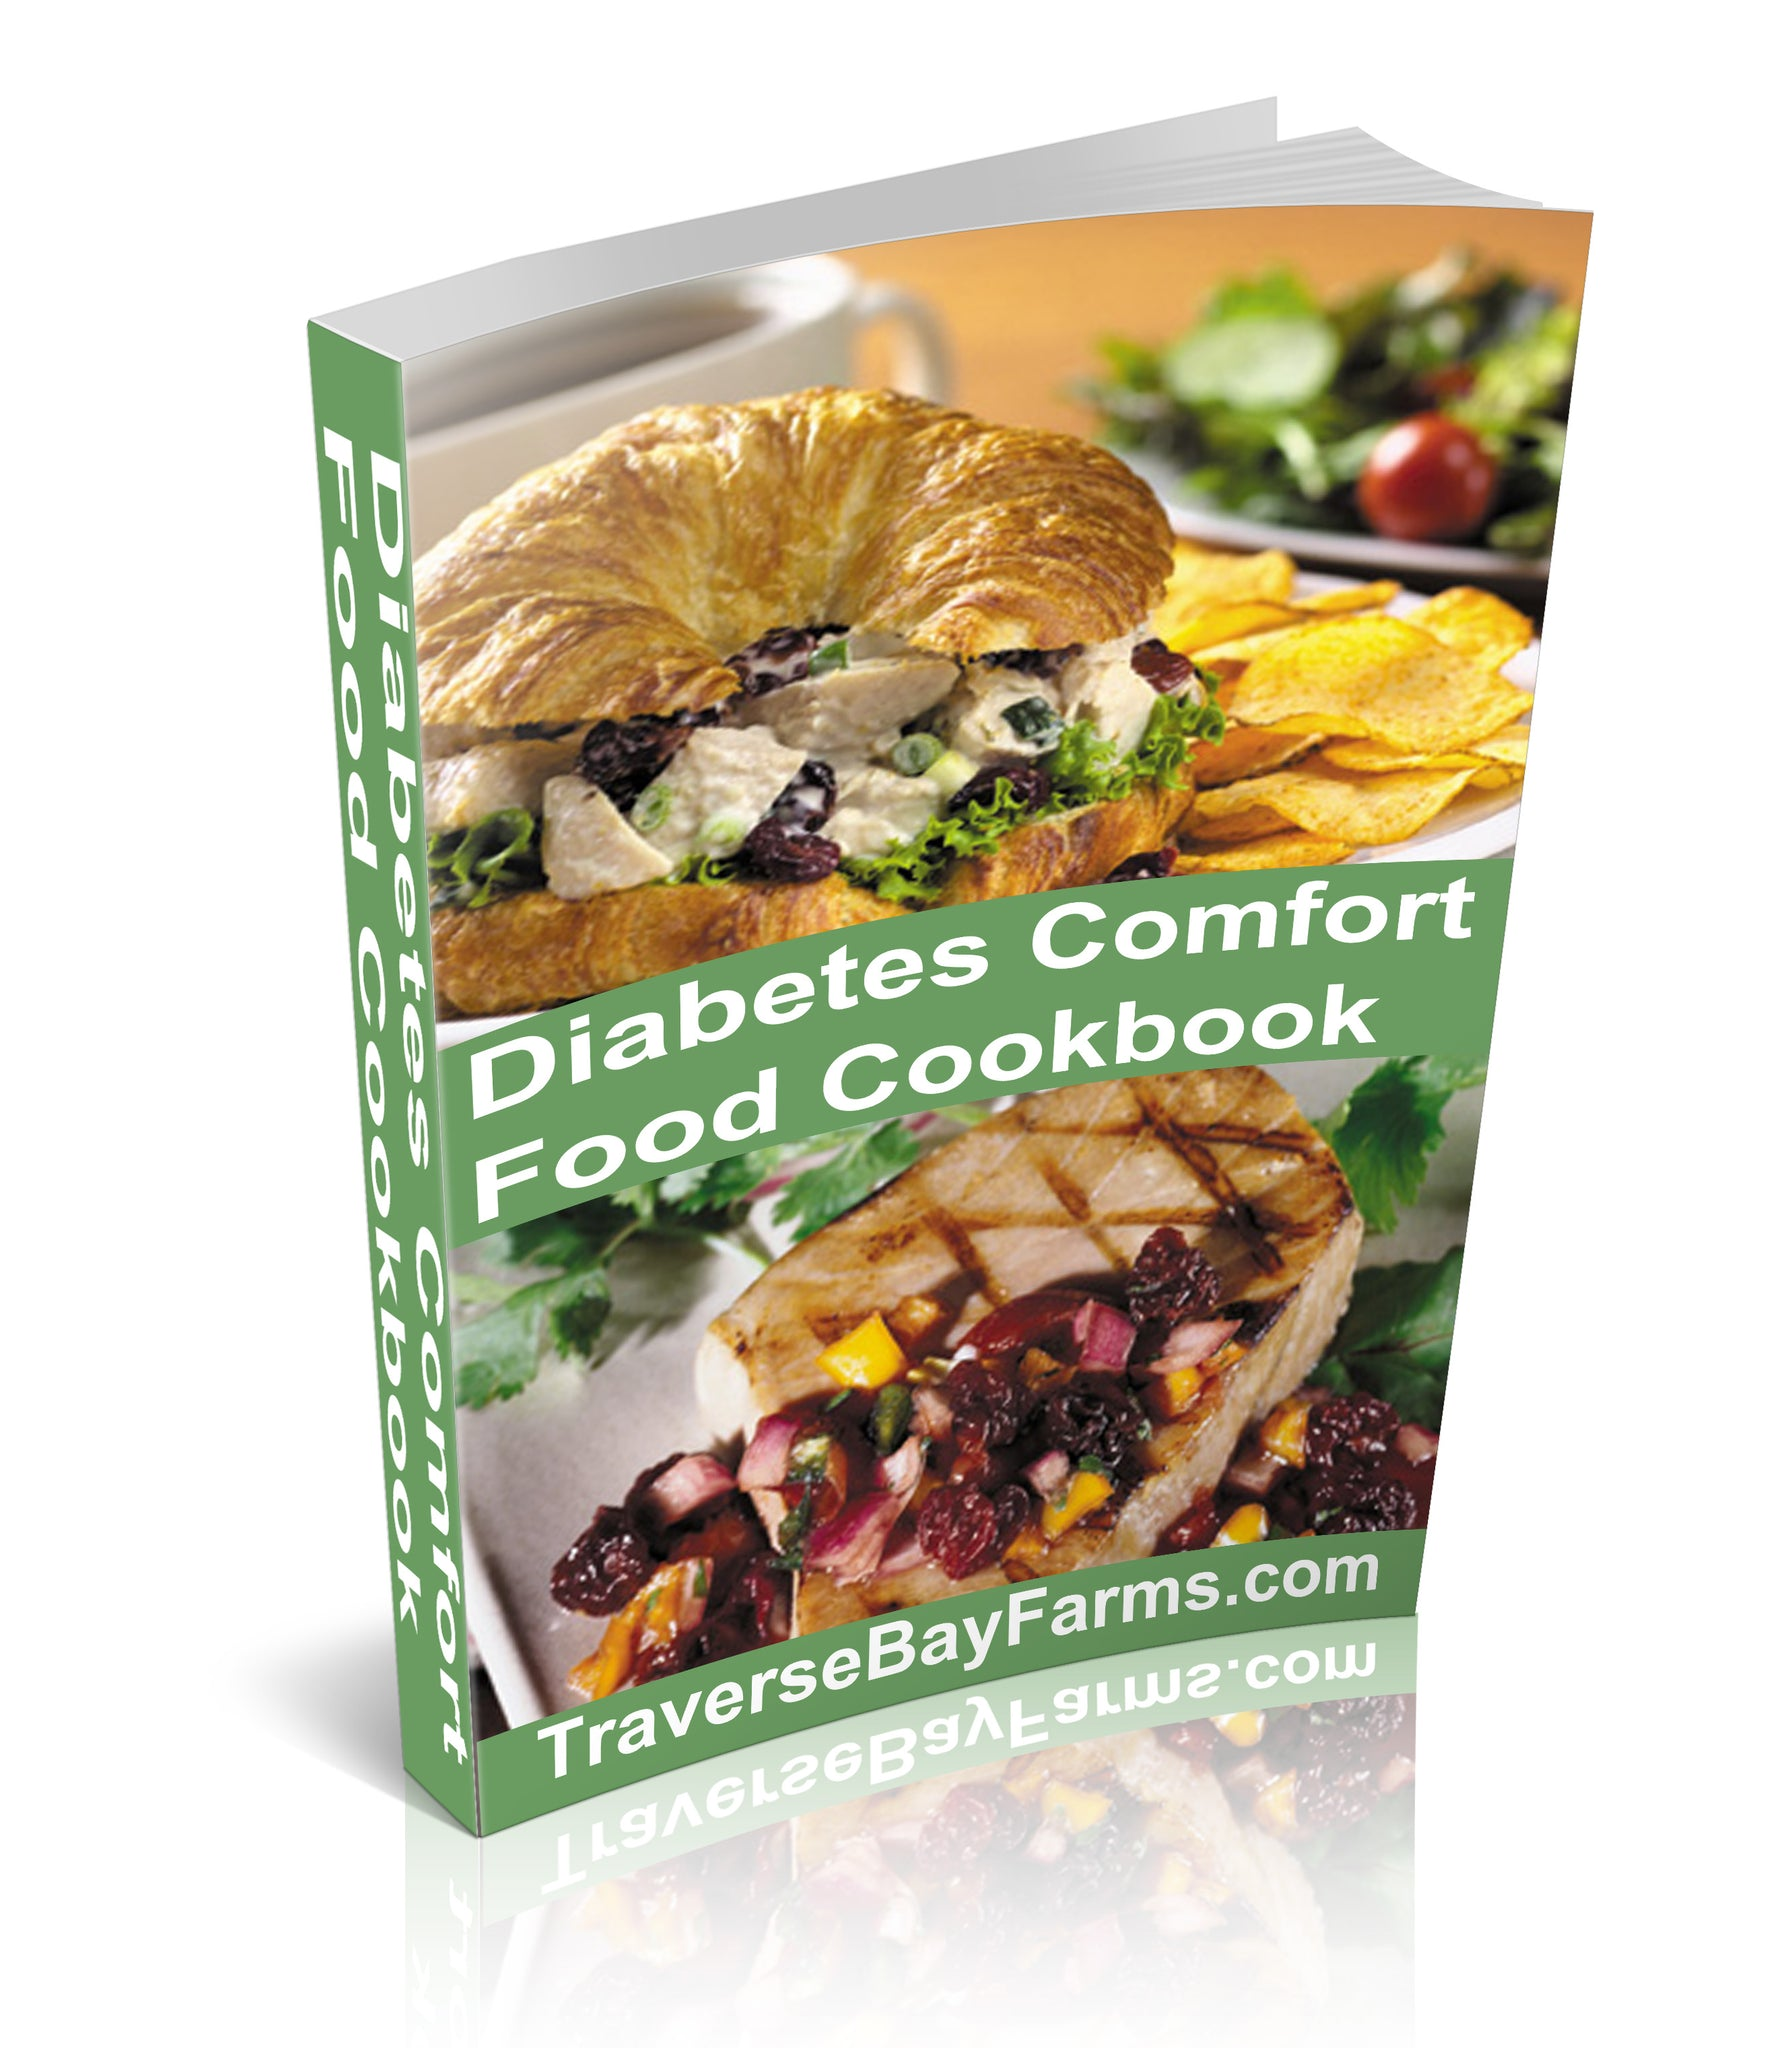 Diabetic Cookbook - Comfort Food for Diabetics - traversebayfarms